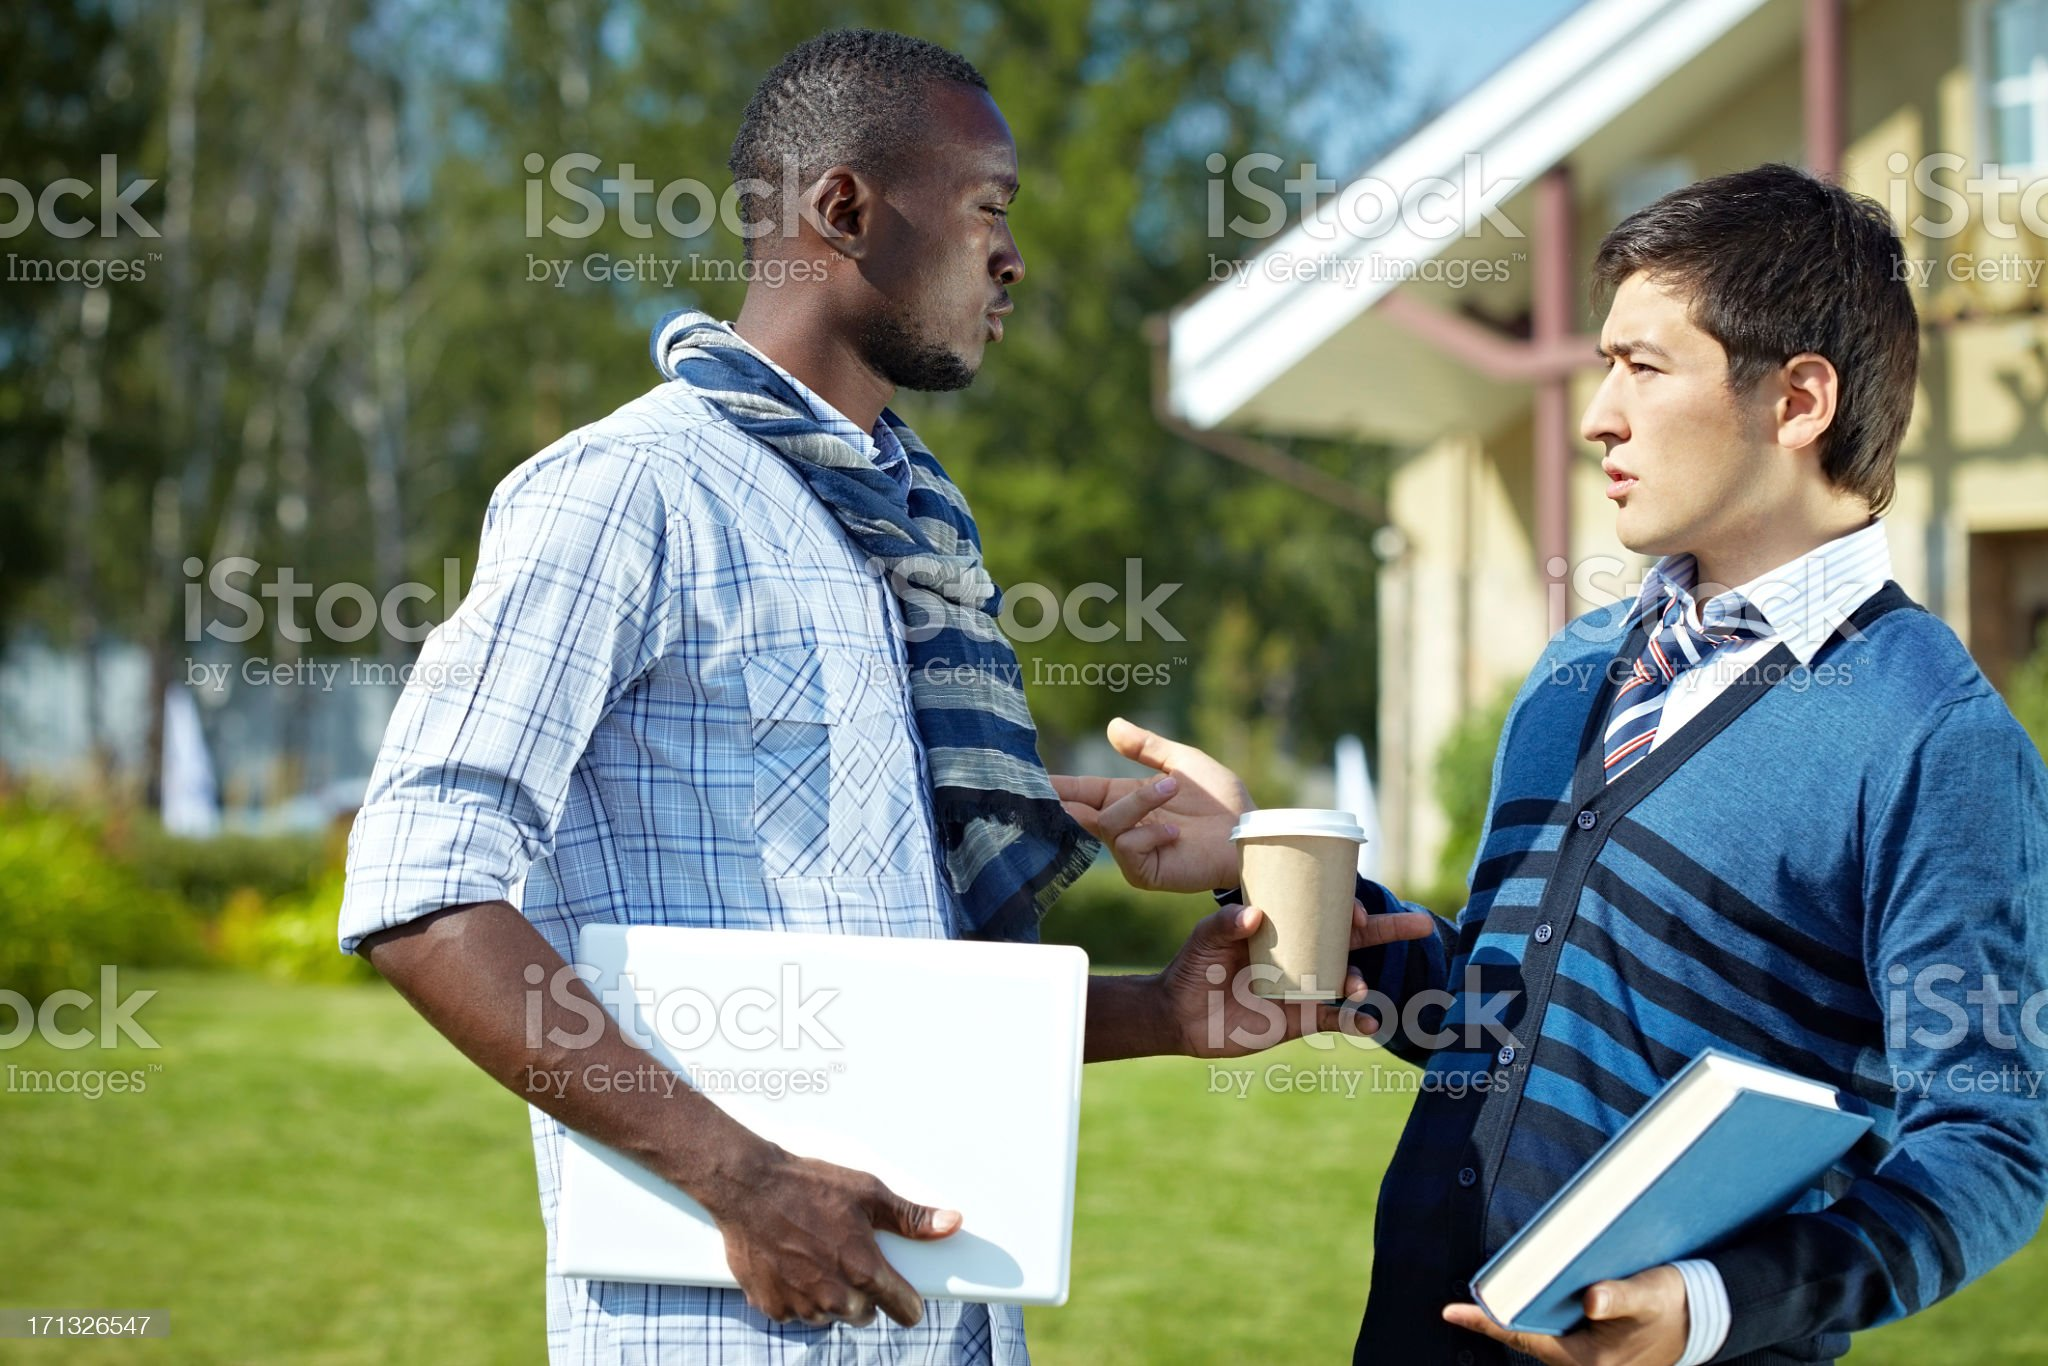 Who are you, man? royalty-free stock photo